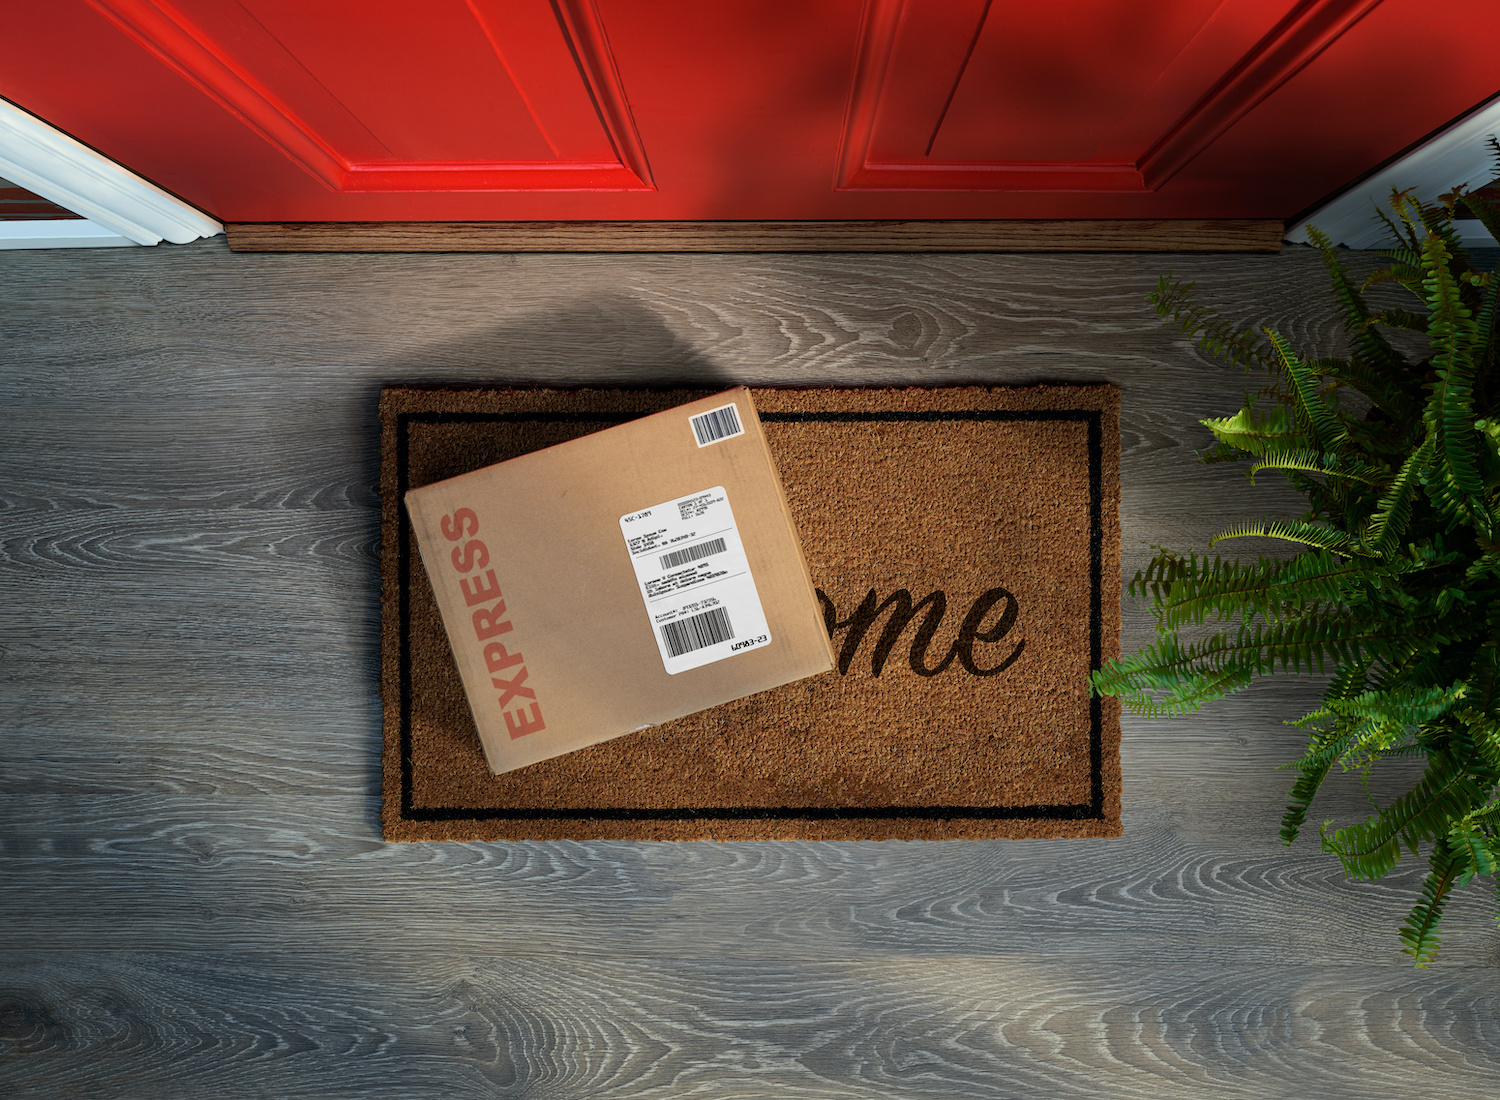 our last mile delivery couriers help you delivery your final mile service to your customers